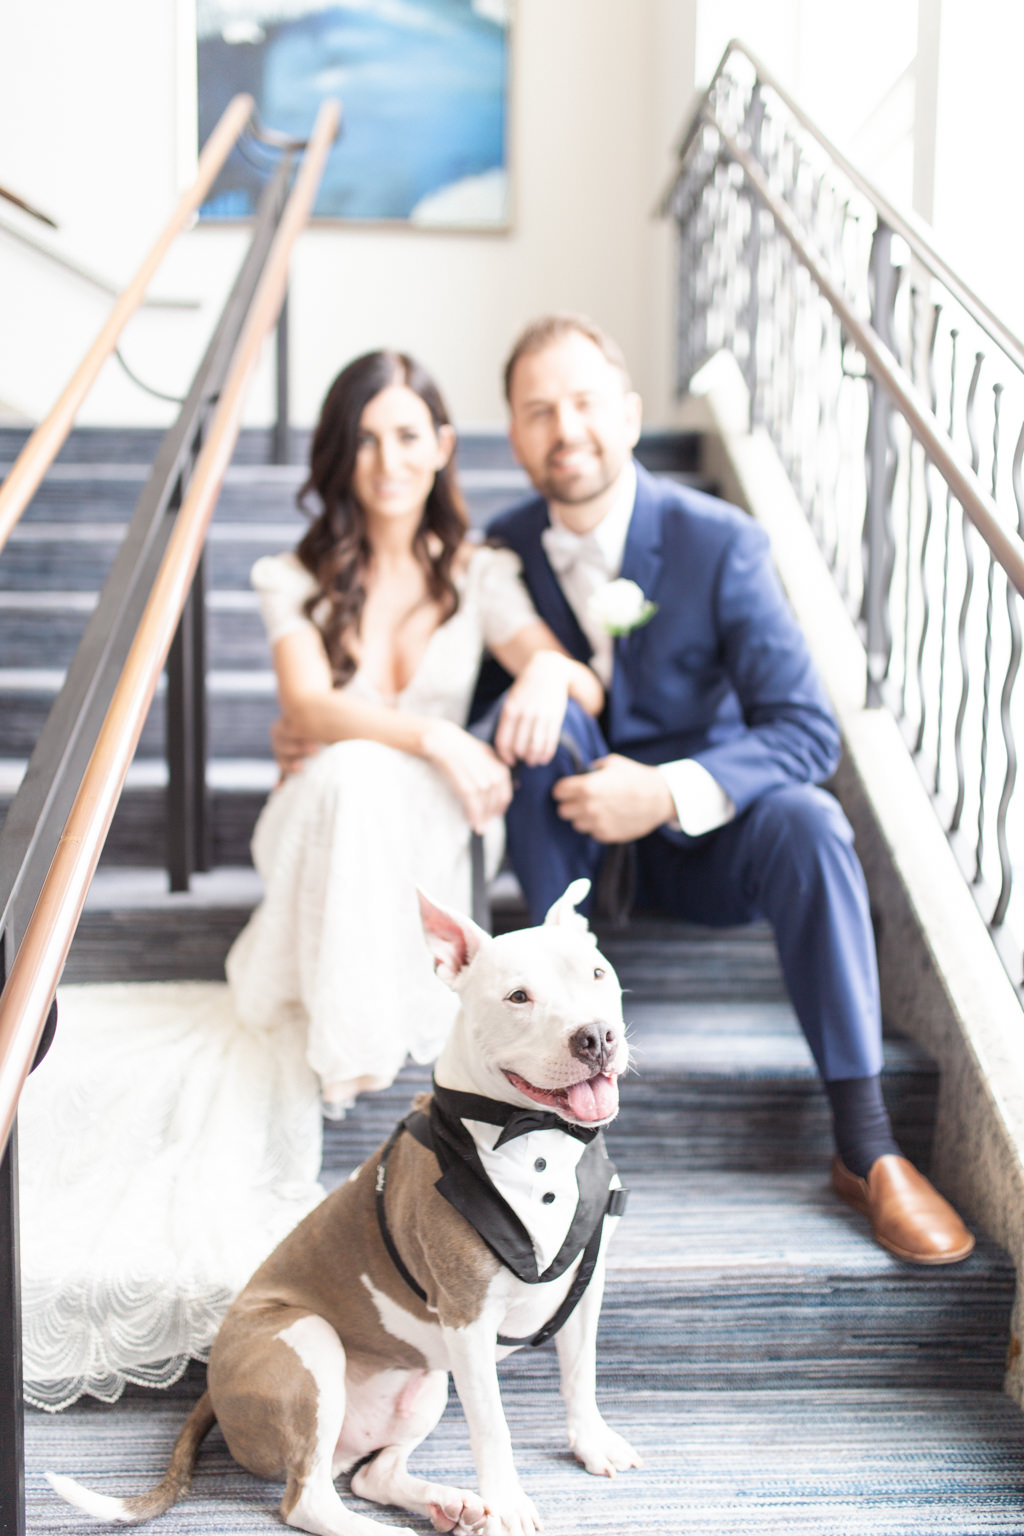 Florida Bride and Groom with Pitbull Dog in Tuxedo Wedding Portrait on Marriott Hotel Staircase   Tampa Wedding Pet Planner FairyTail Pet Care